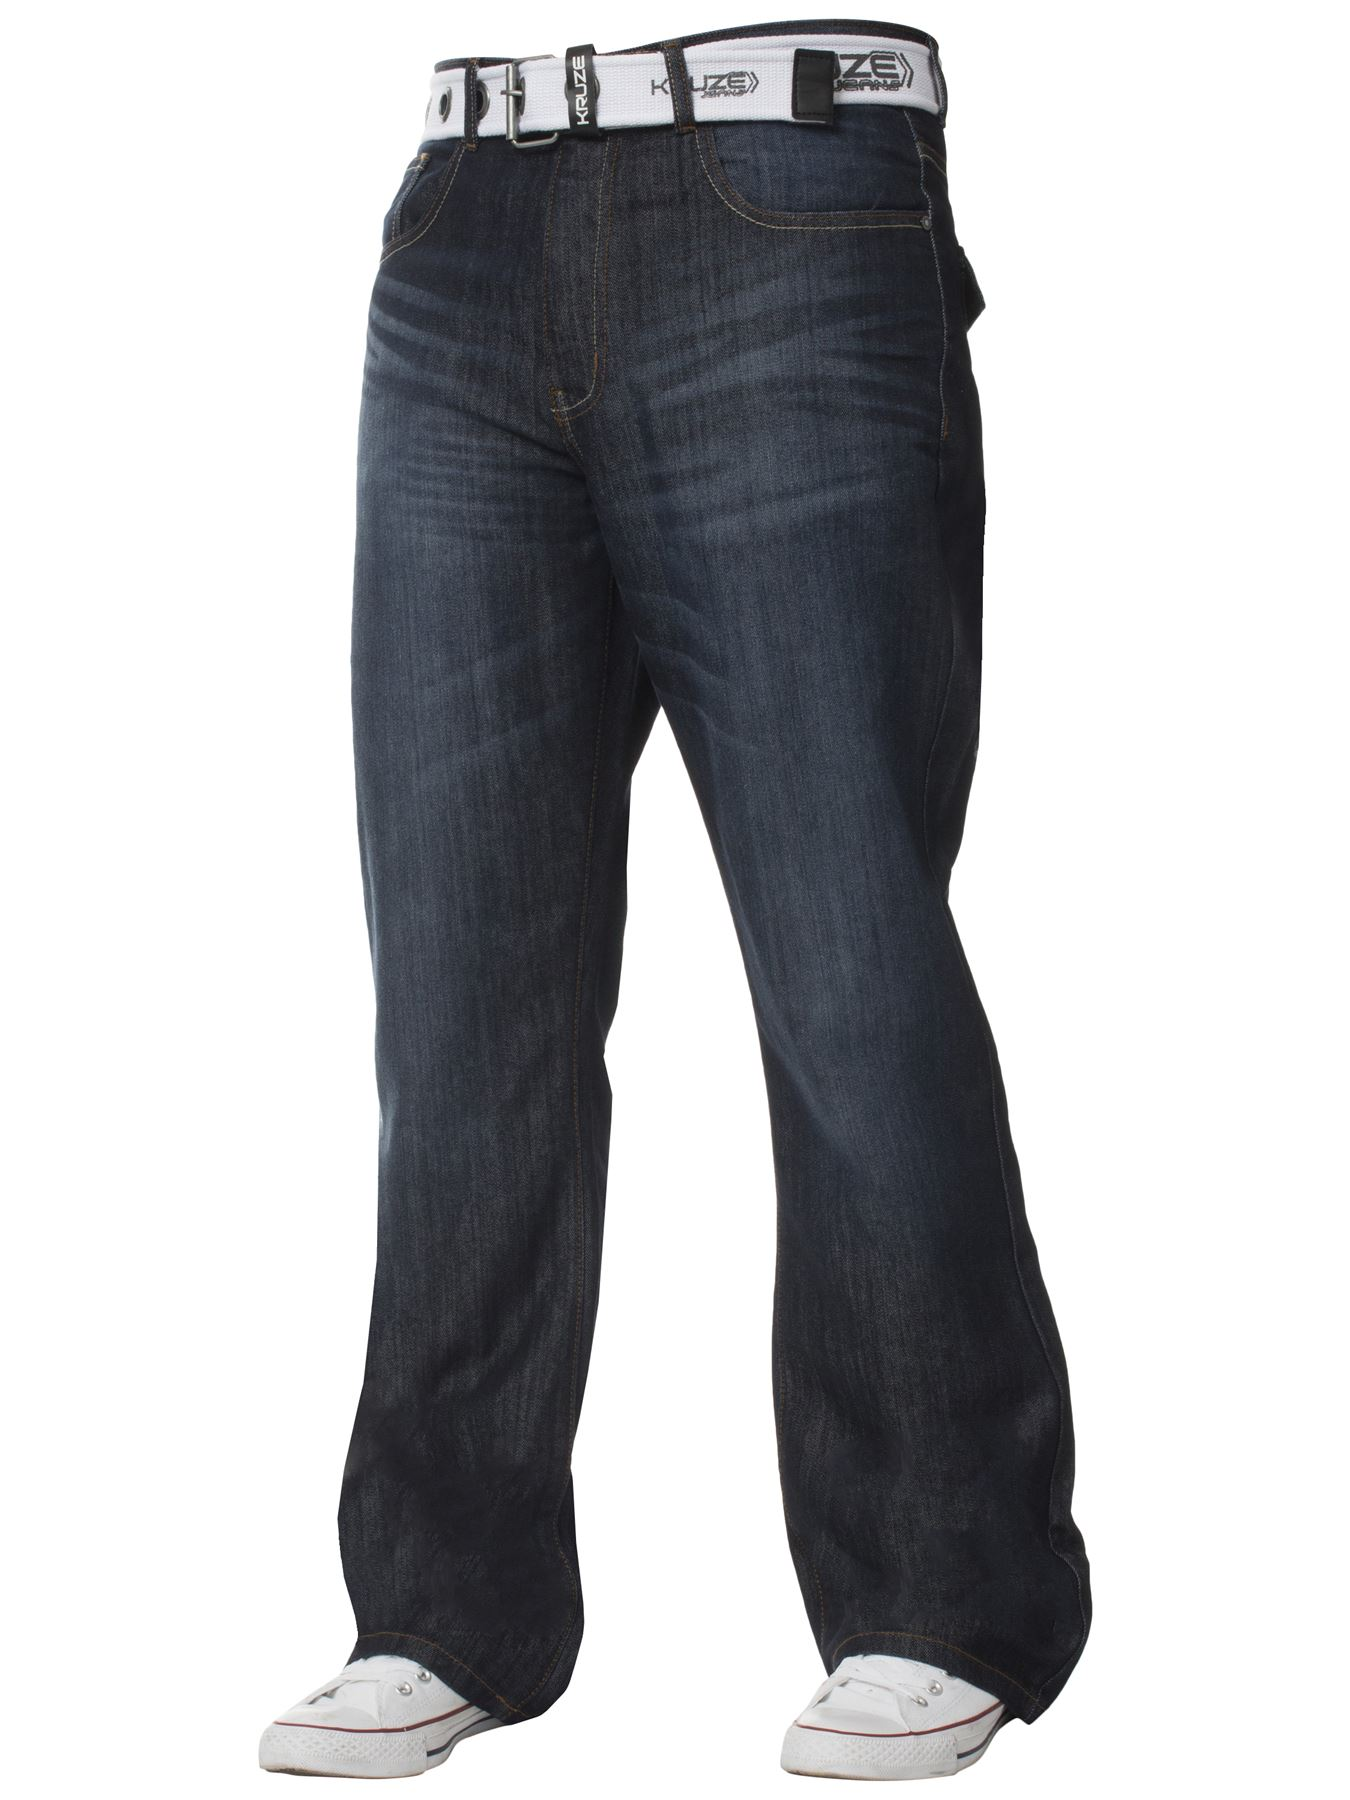 Kruze-Denim-New-Mens-Bootcut-Jeans-Wide-Leg-Flare-Pants-King-Big-All-Waist-Sizes thumbnail 9